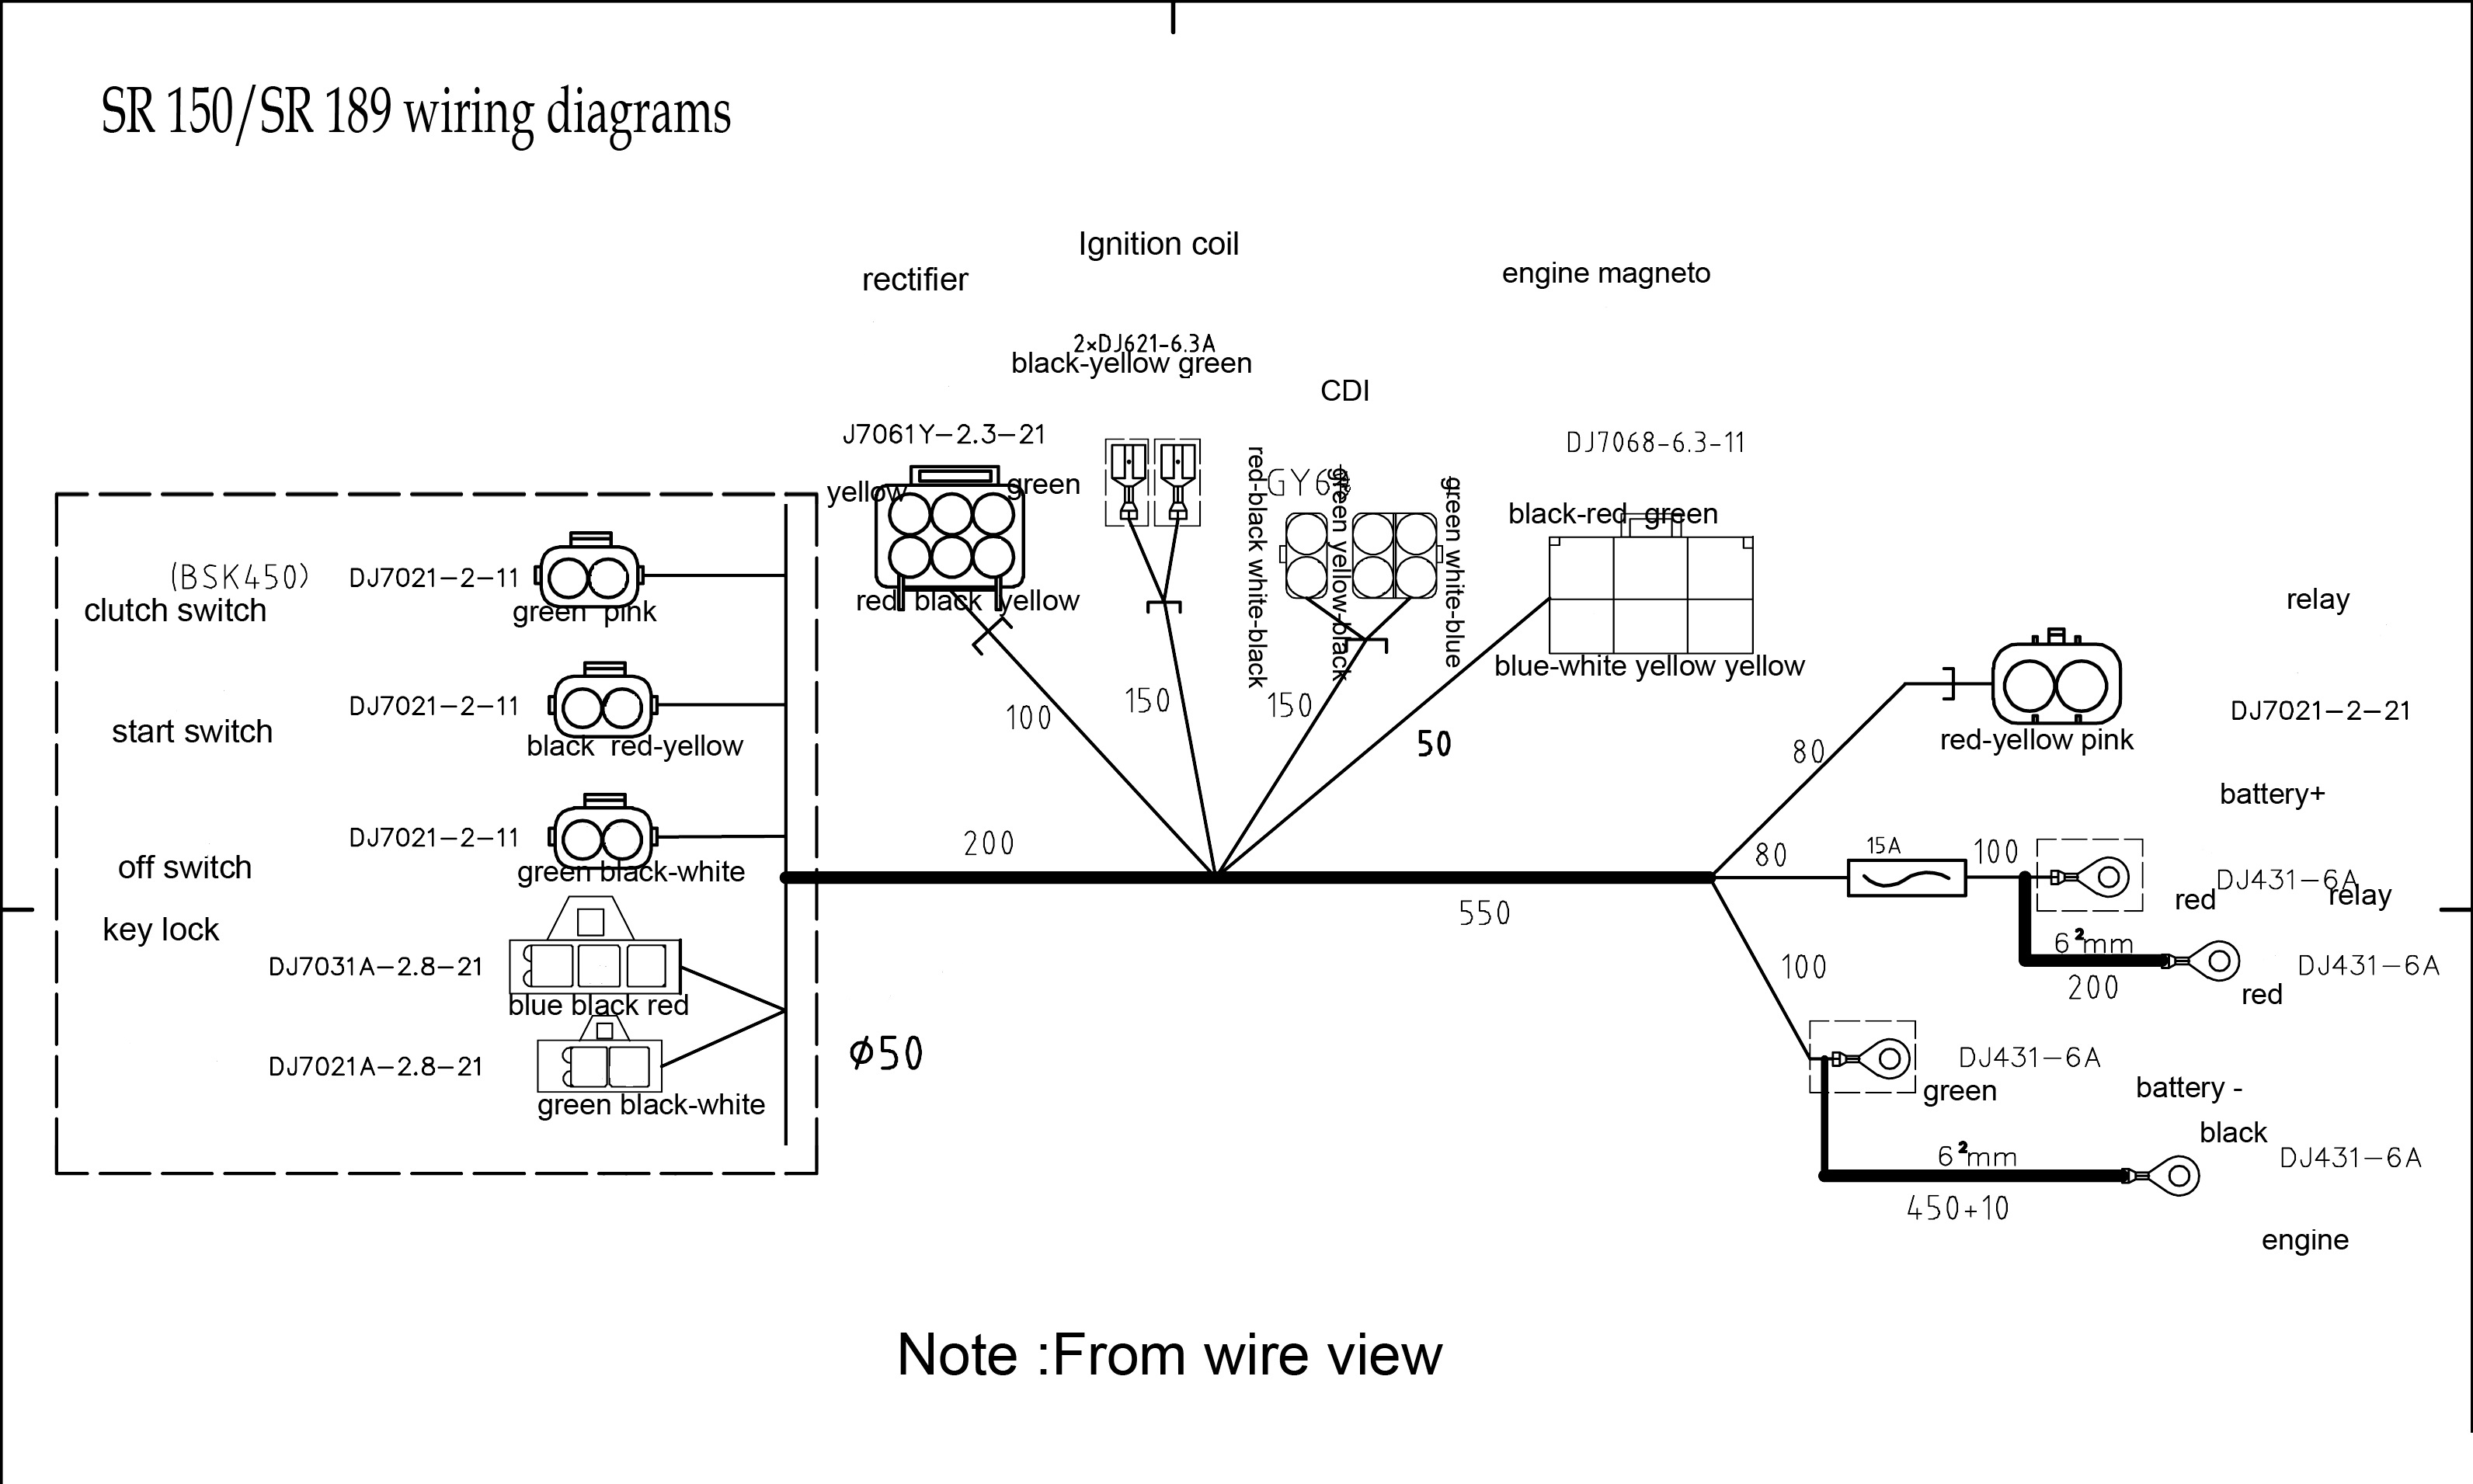 SR150_189_Wiring_Diagram wire diagram Terminator Time Loop Diagram at crackthecode.co